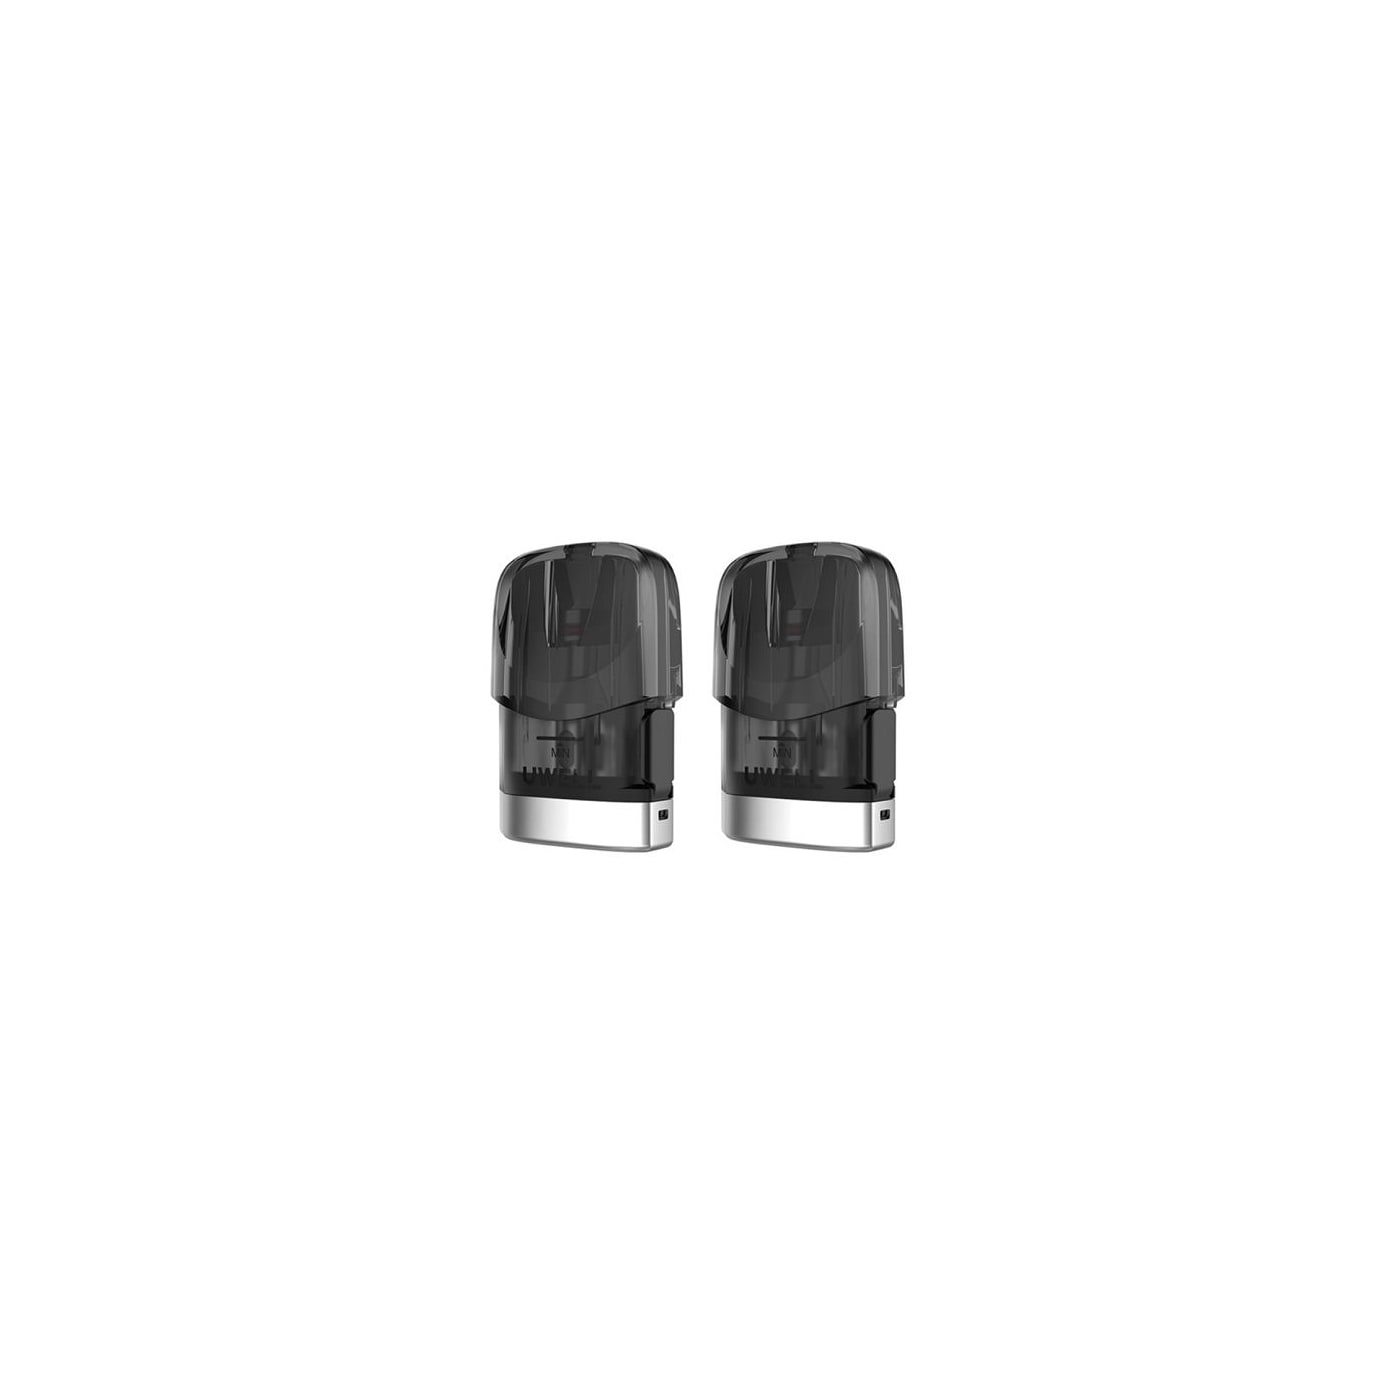 Yearn Neat 2 by Uwell Replacement Pod - 2 Pack